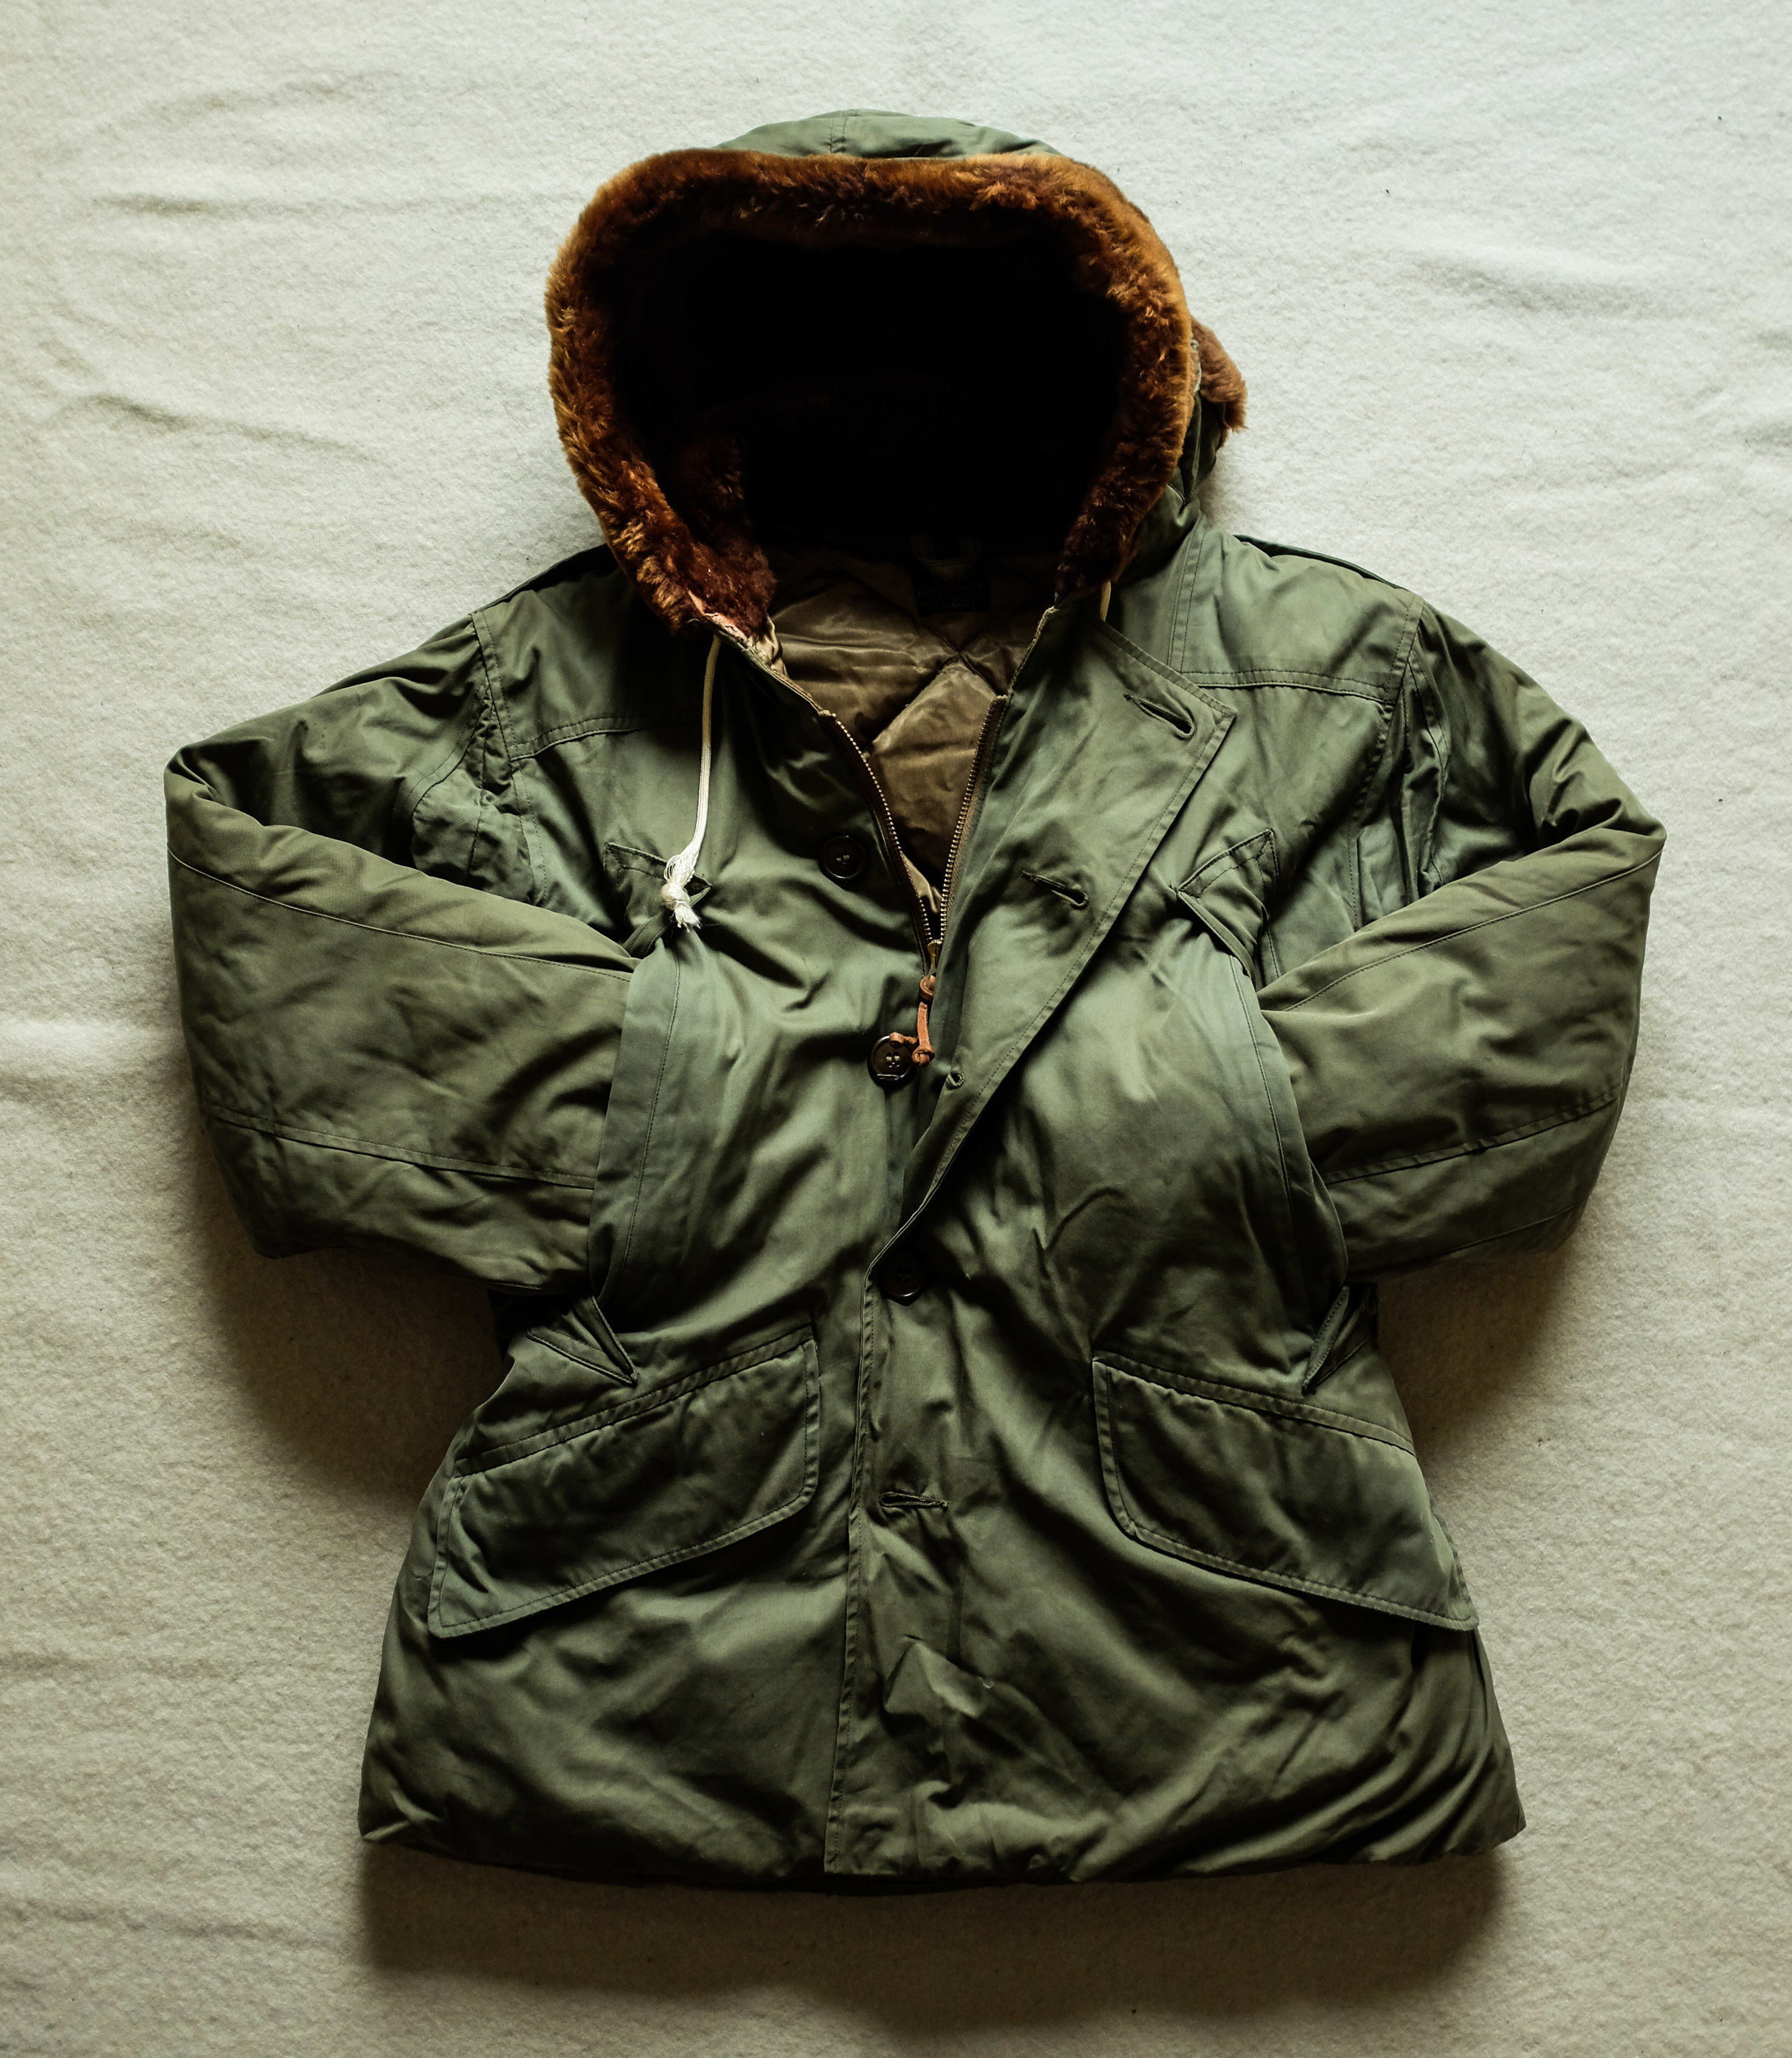 4f8f56c0033fa Near Mint Original WW2 Eddie Bauer USAAF B-9 Down Parka Winter Flight Parka.  Size Small 36 Jacket.